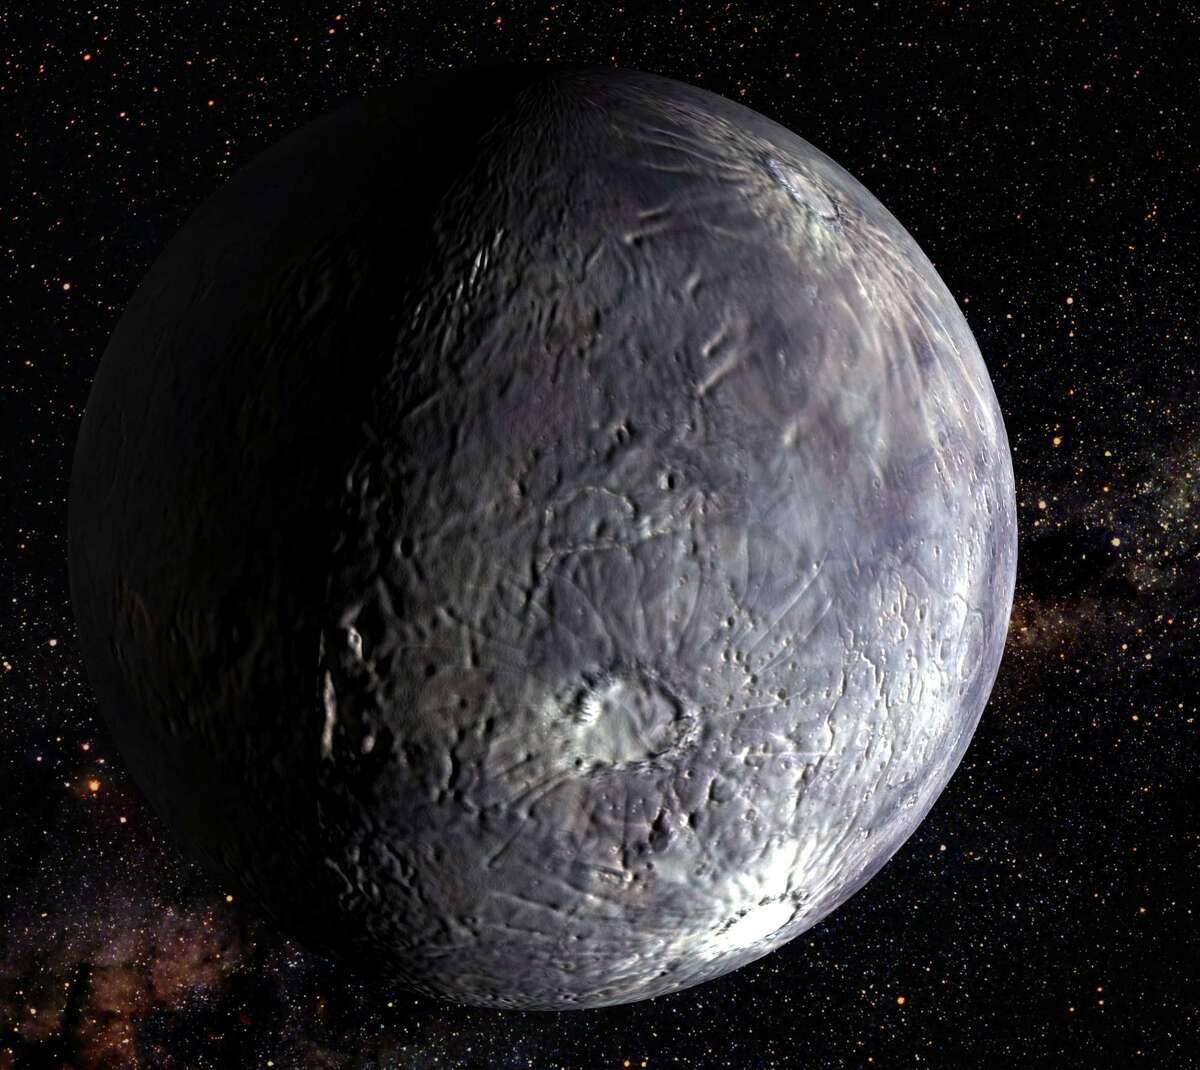 """This undated handout is an artist's rendition of the object """"2002 LM60,"""" dubbed """"Quaoar,"""" by its discoverers, after NASA's Hubble Space Telescope's new Advanced Camera captured images of the frozen celestial body in the Kuiper belt, an icy debris field of comet-like bodies, about four billion miles from Earth. Astronomers have determined that Quaoar is the largest body found in the solar system since the discovery of Pluto 72 years ago, but do not consider it a planet. (AP Photo/NASA)"""